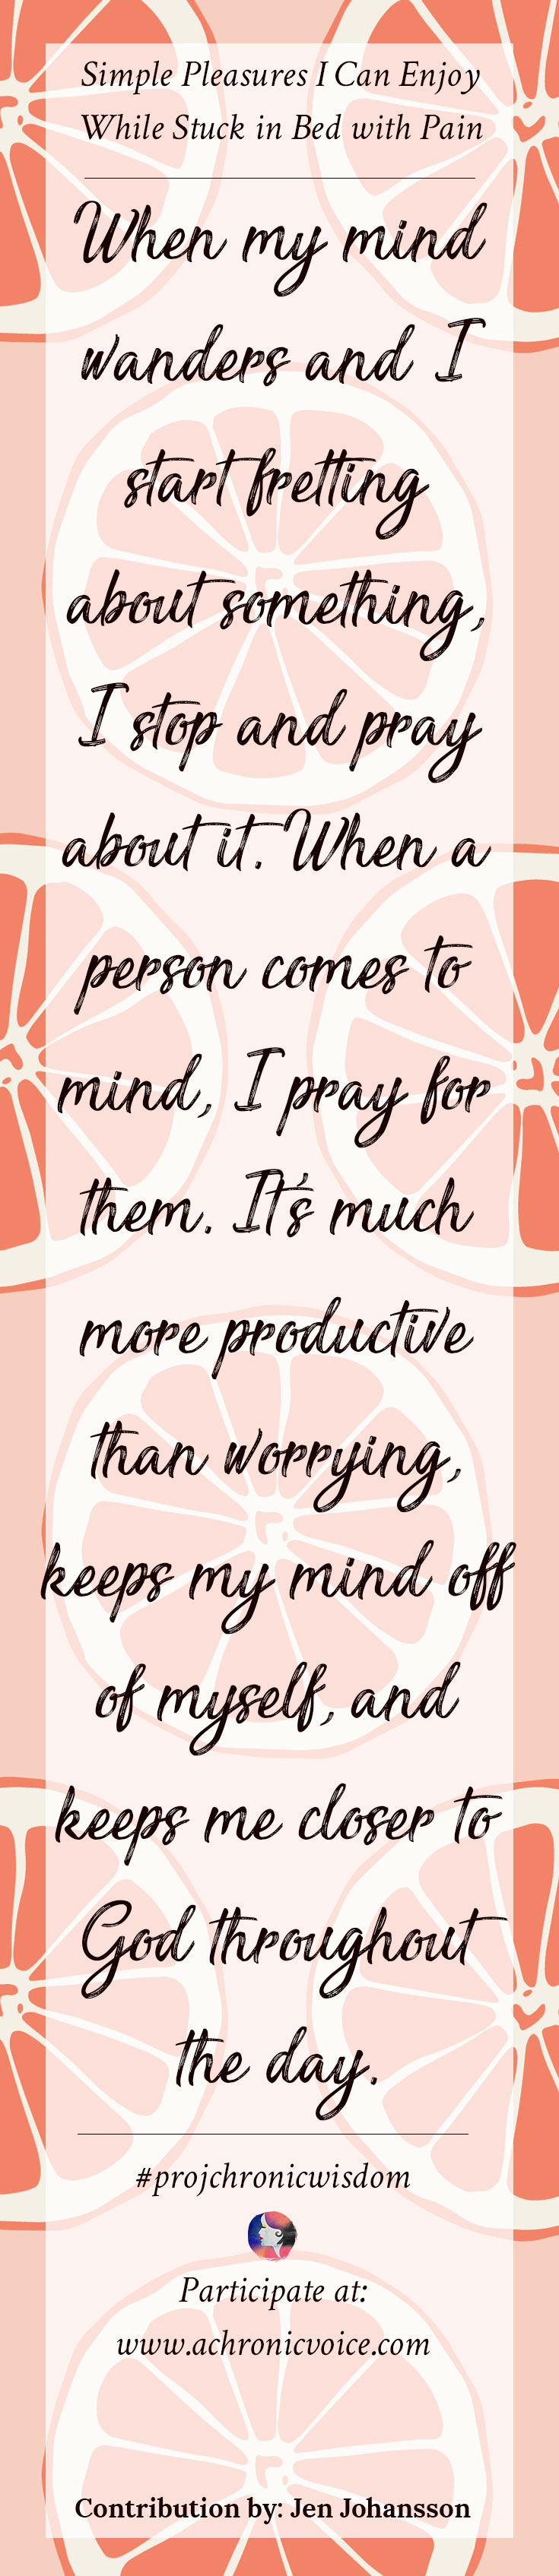 """When my mind wanders and I start fretting about something, I stop and pray about it. When a person comes to mind, I pray for them. It's much more productive than worrying, keeps my mind off of myself, and keeps me closer to God throughout the day."" - Jen Johansson 